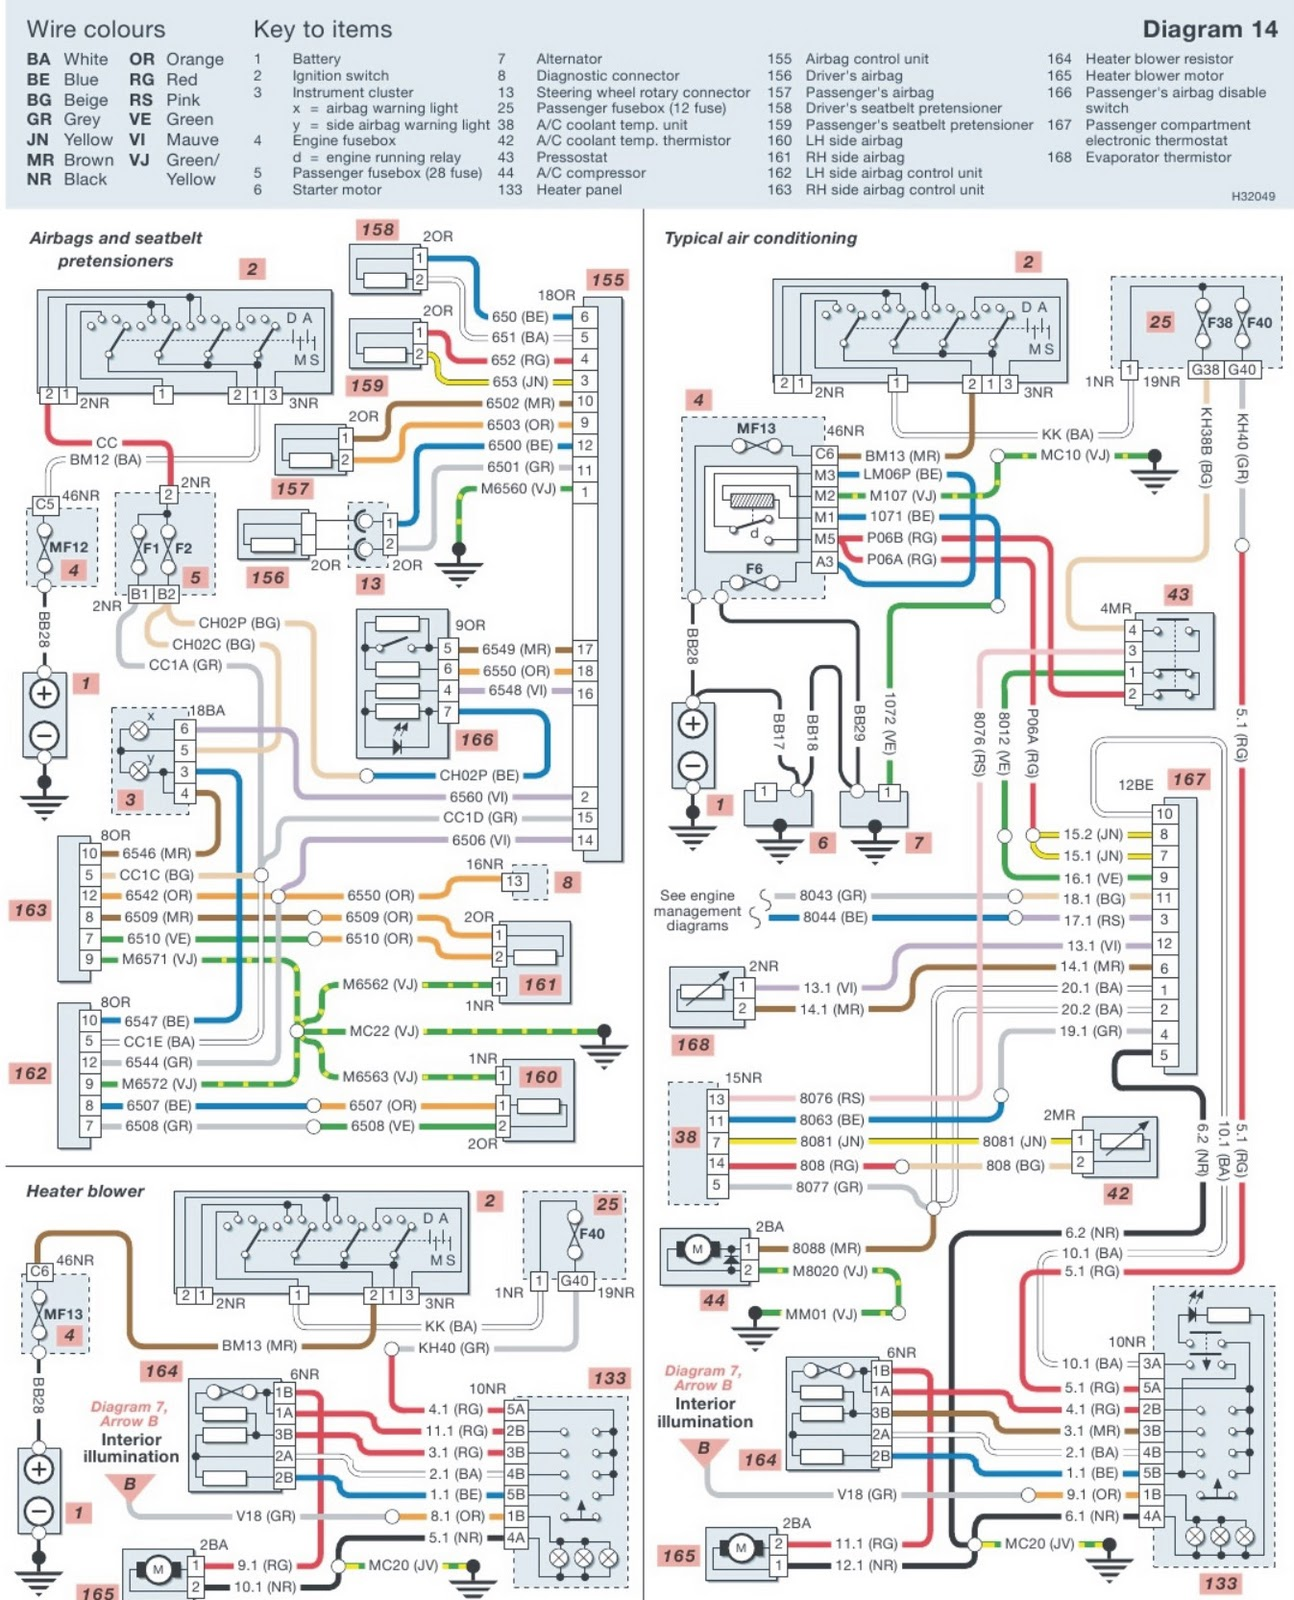 peugeot 406 wiring diagram radio wiring diagram loadpeugeot 406 wiring diagram schema wiring diagram peugeot 406 [ 1294 x 1600 Pixel ]